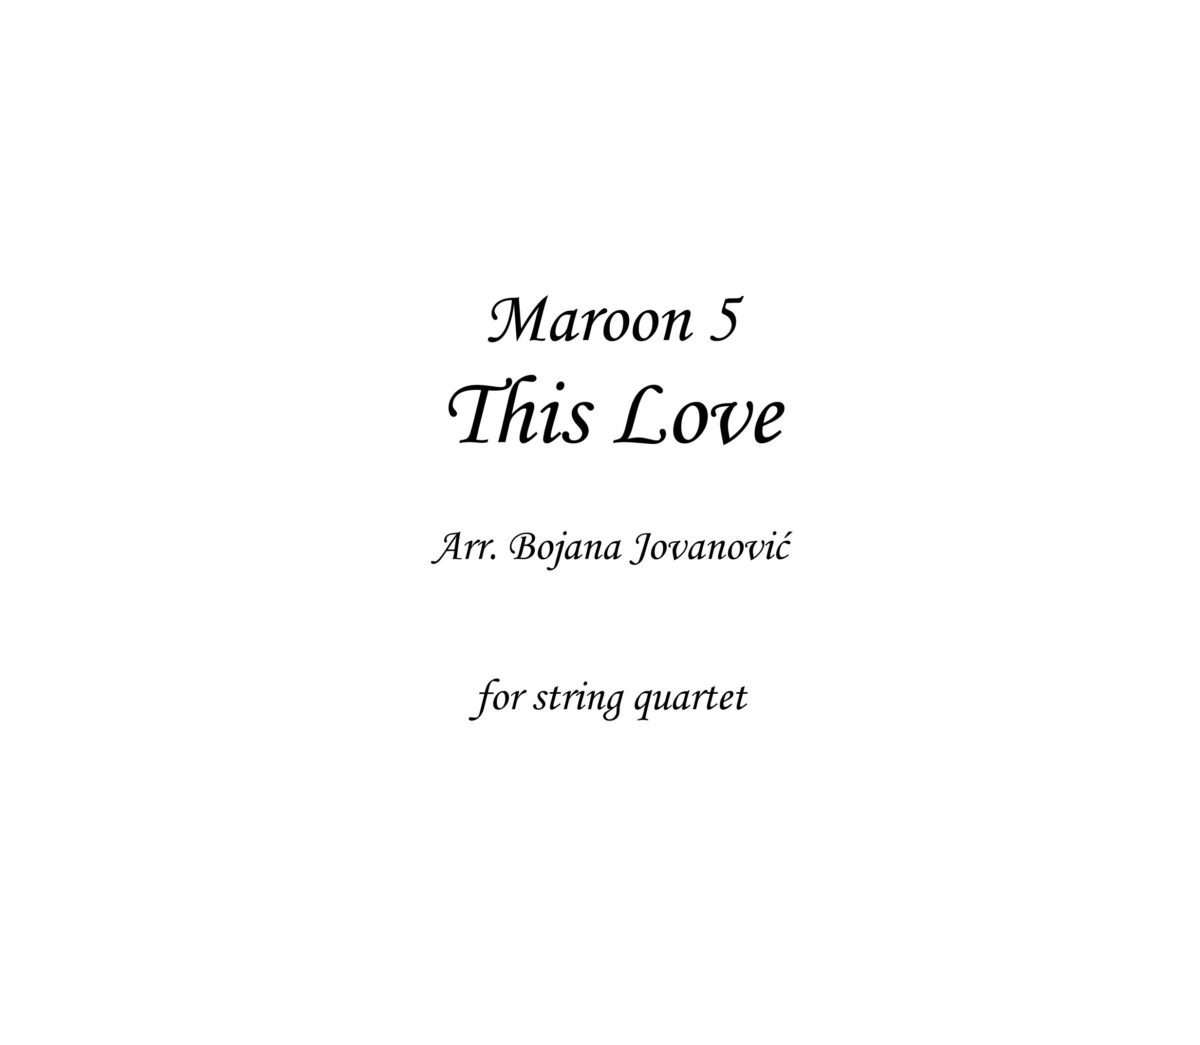 This Love (Maroon 5) - Sheet Music